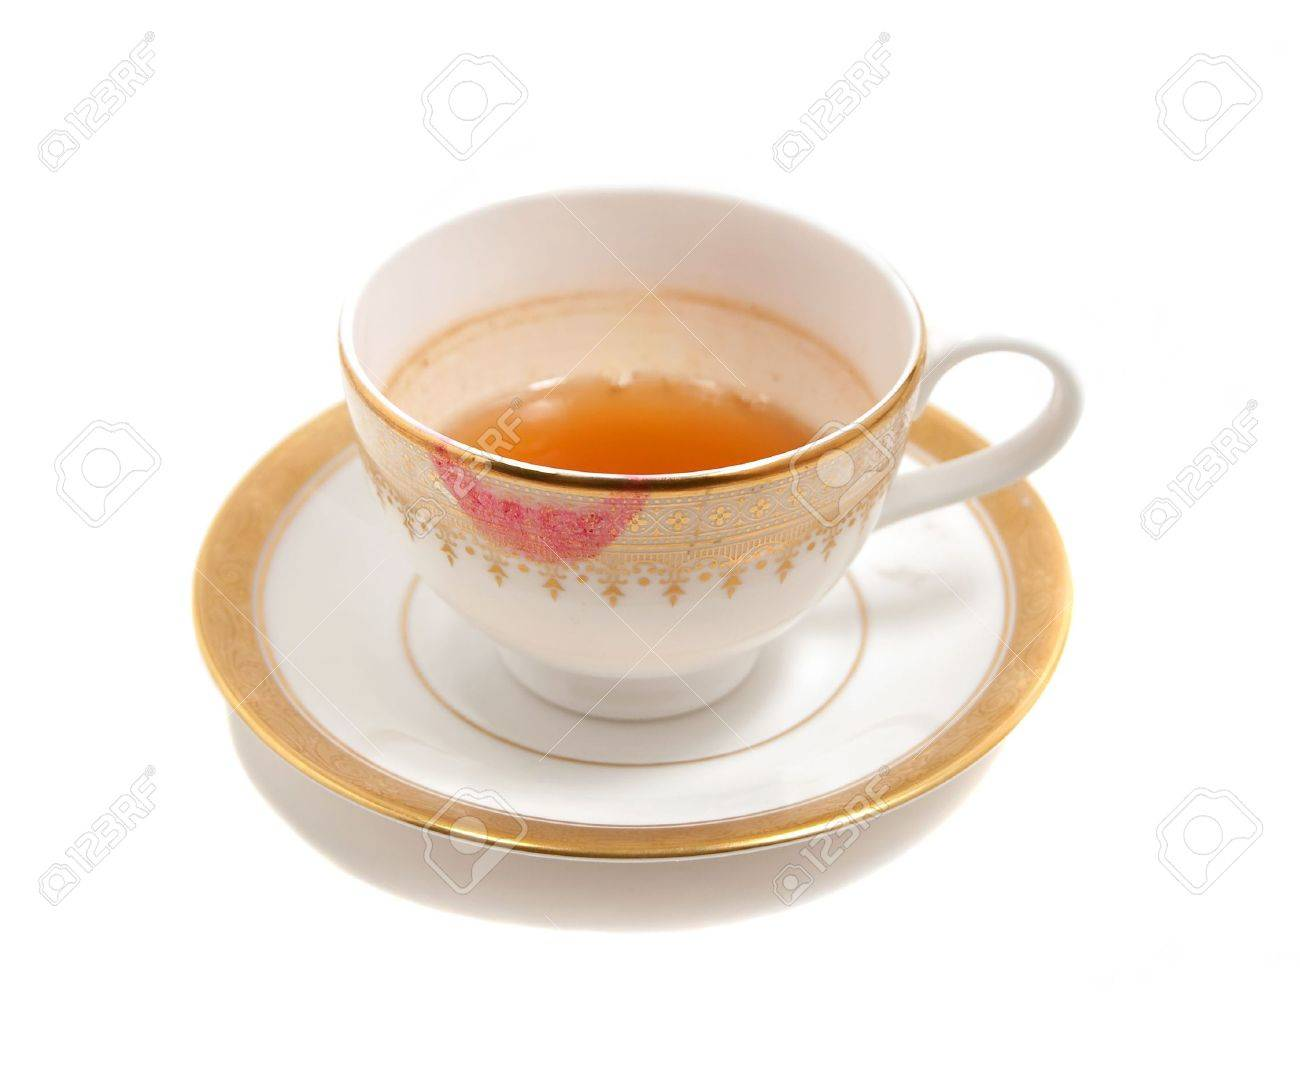 stained teacup with lipstick smear isolated on white - 5383328